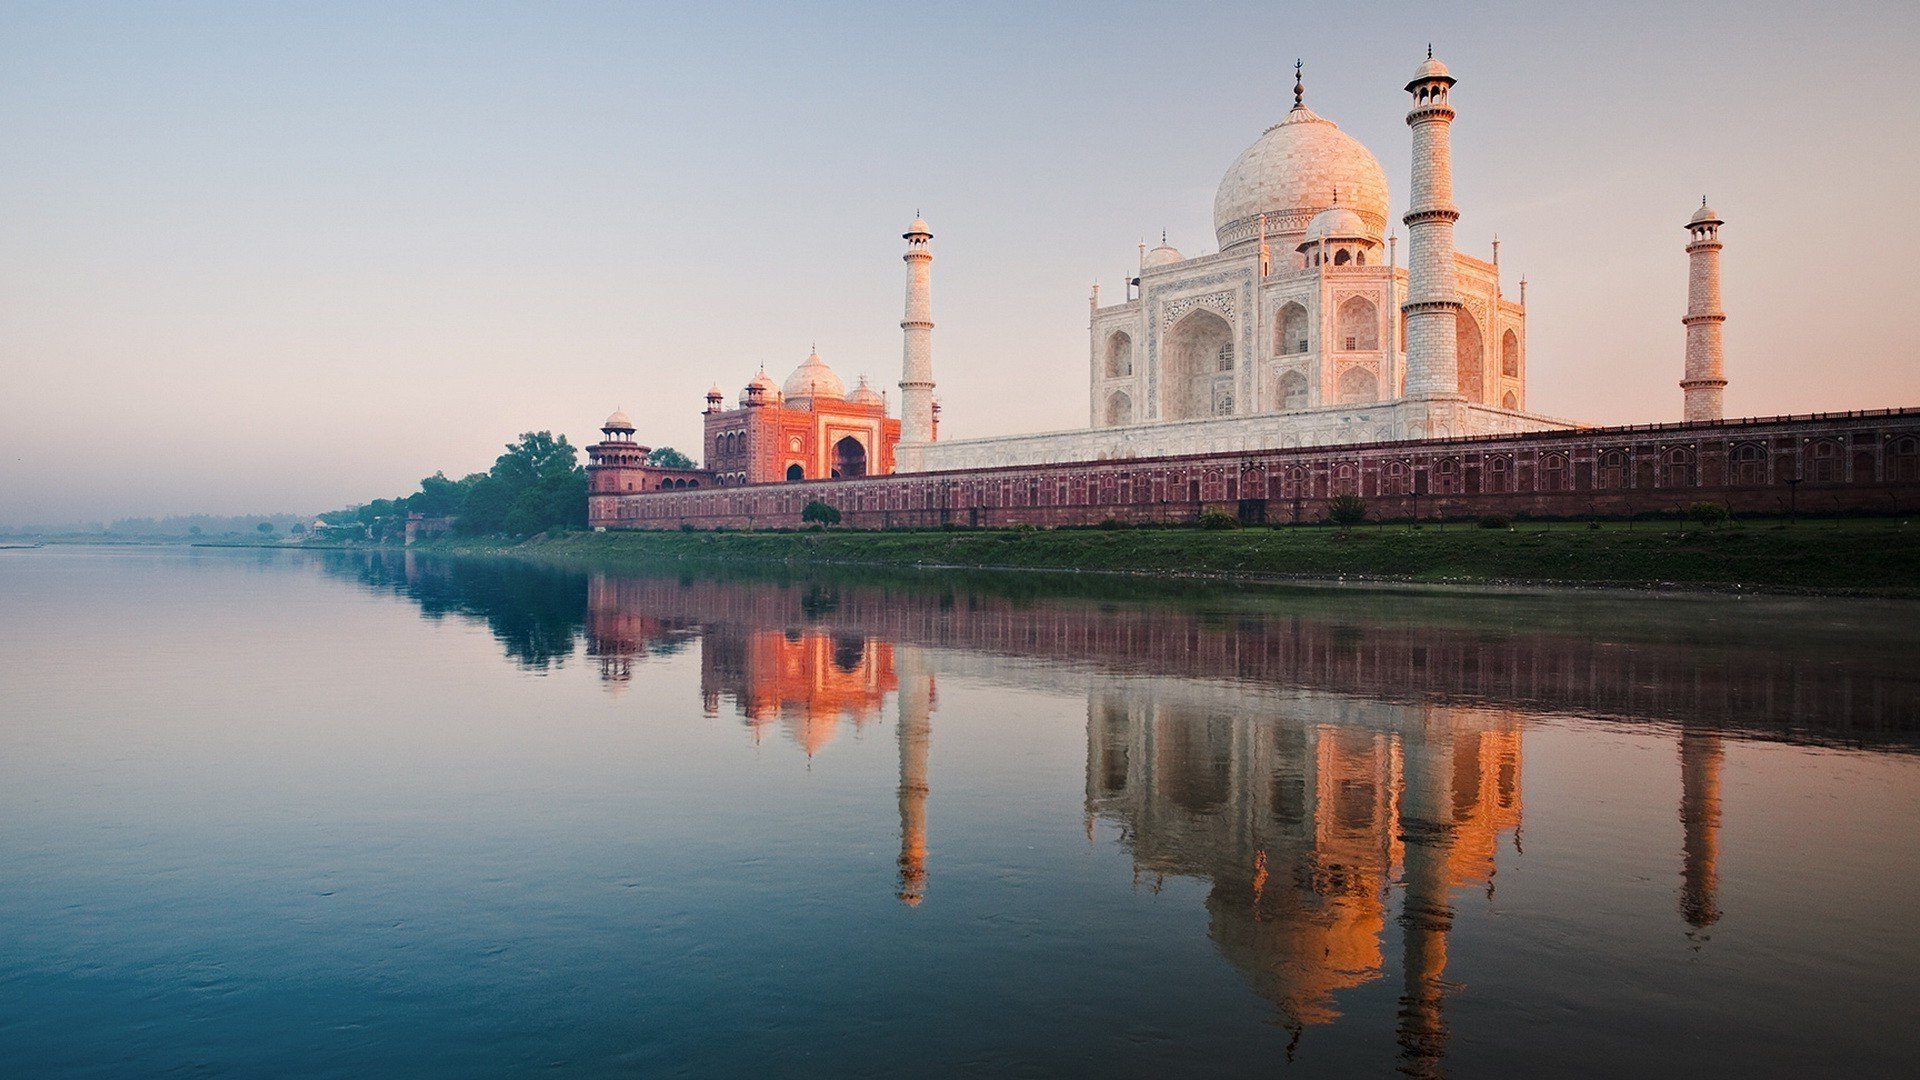 1920x1080 Taj Mahal River Laptop Full Hd 1080p Hd 4k Wallpapers